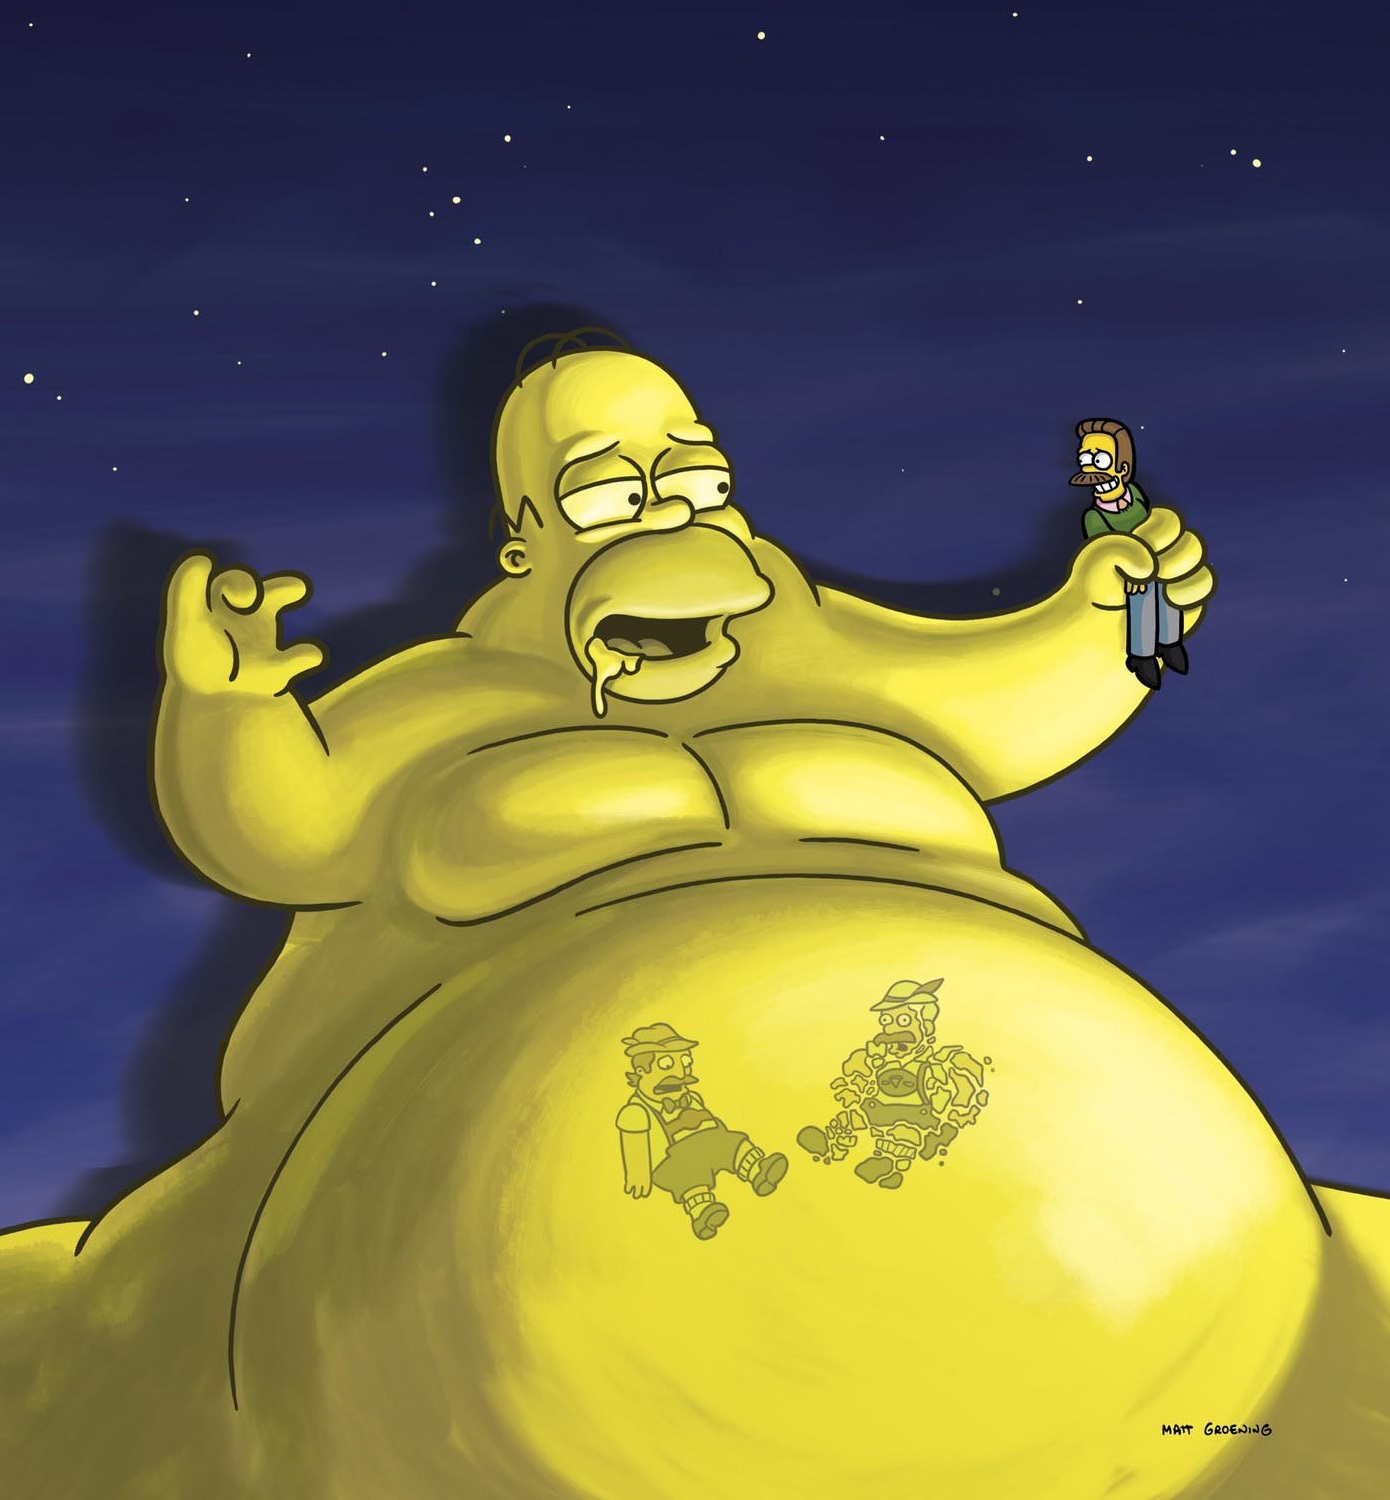 The Blob (The Simpsons)